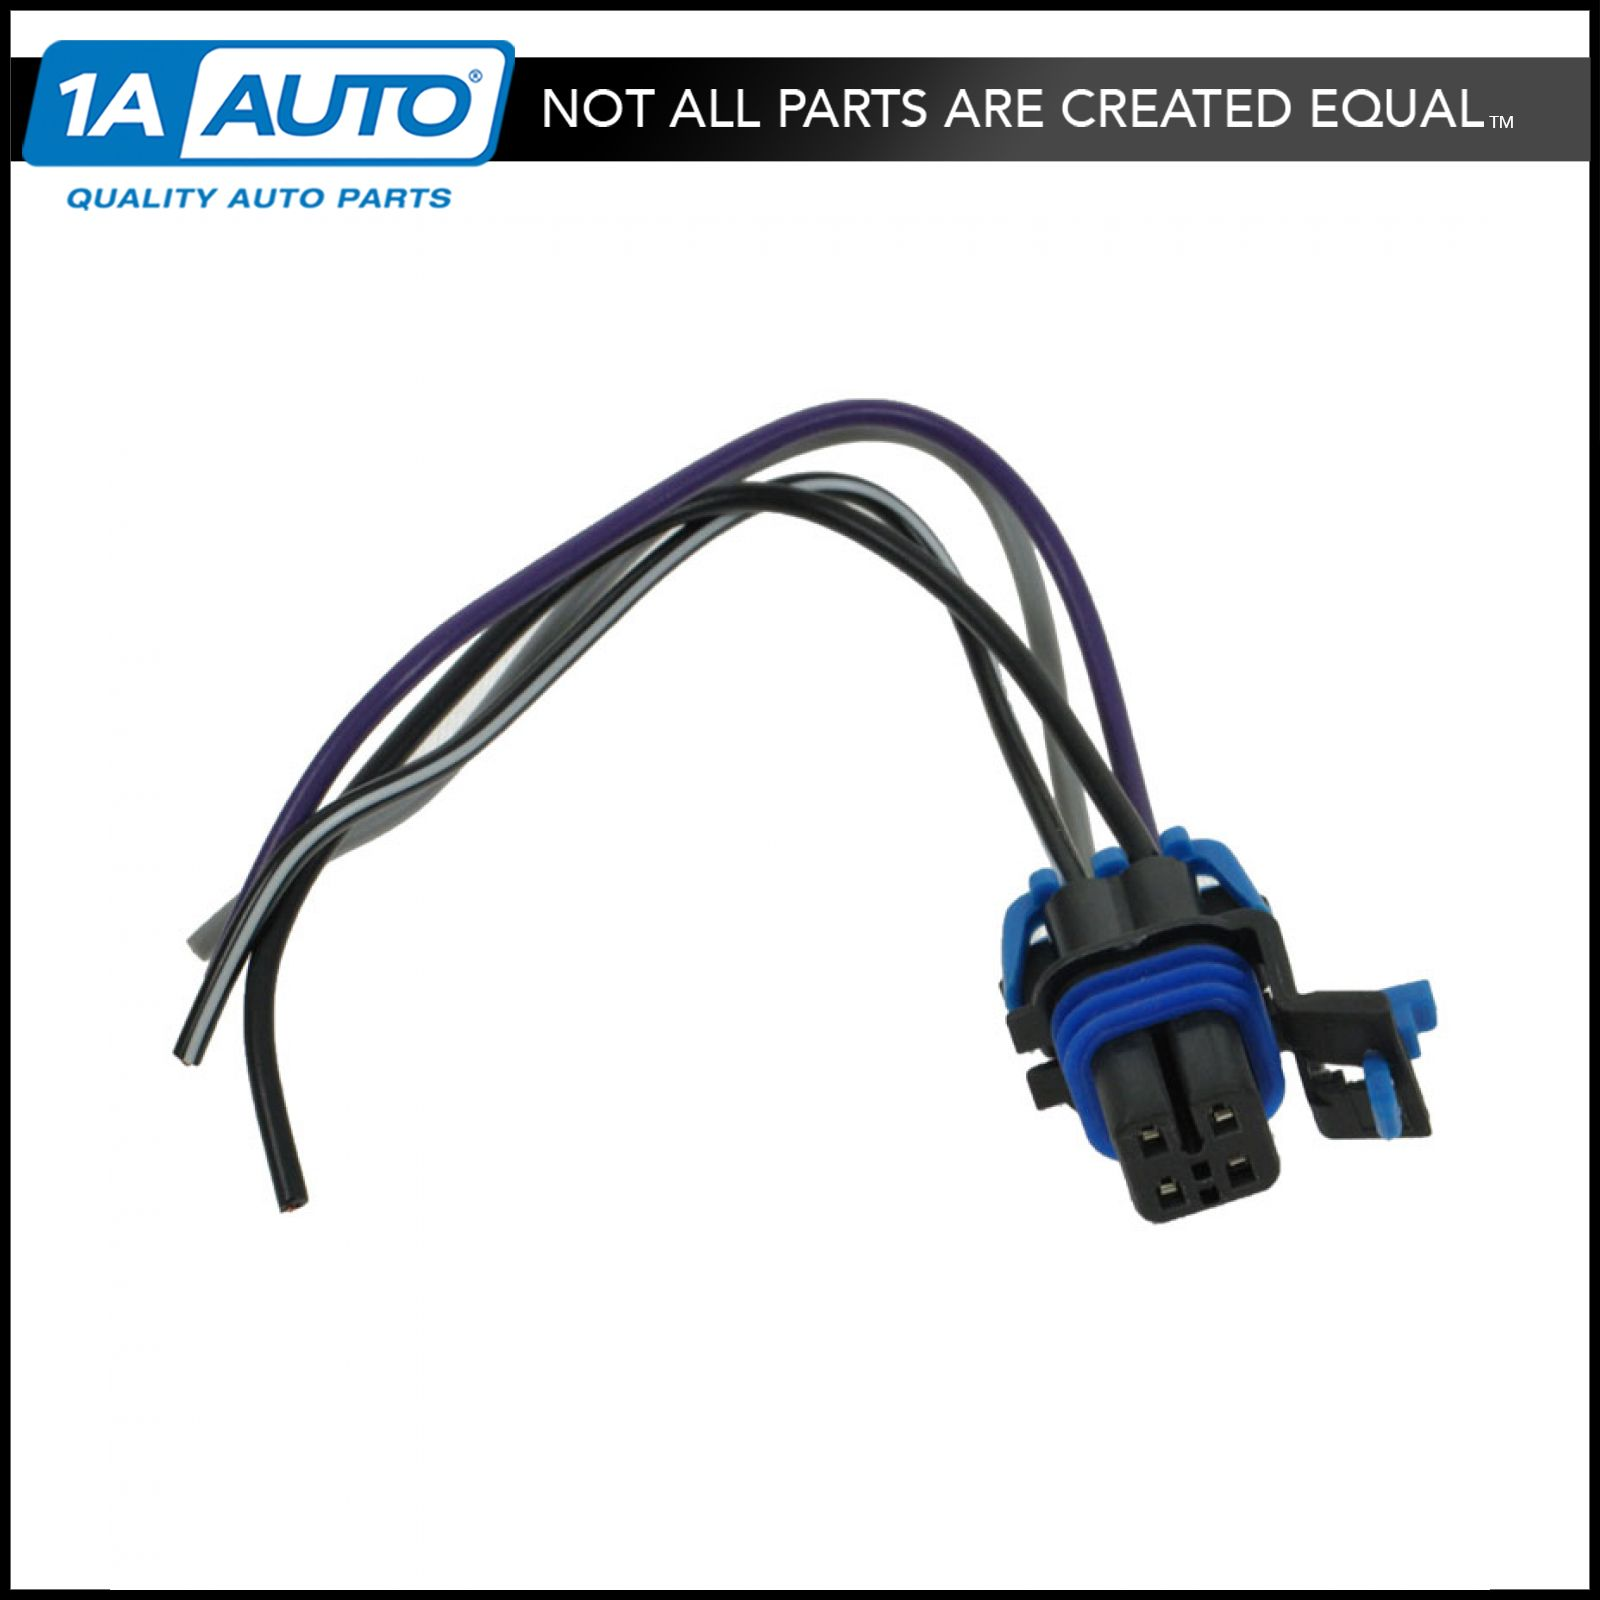 hight resolution of fuel pump wiring harness with square connector 4 wire pigtail for 1999 chevy tahoe fuel pump wiring harness chevy fuel pump wiring harness